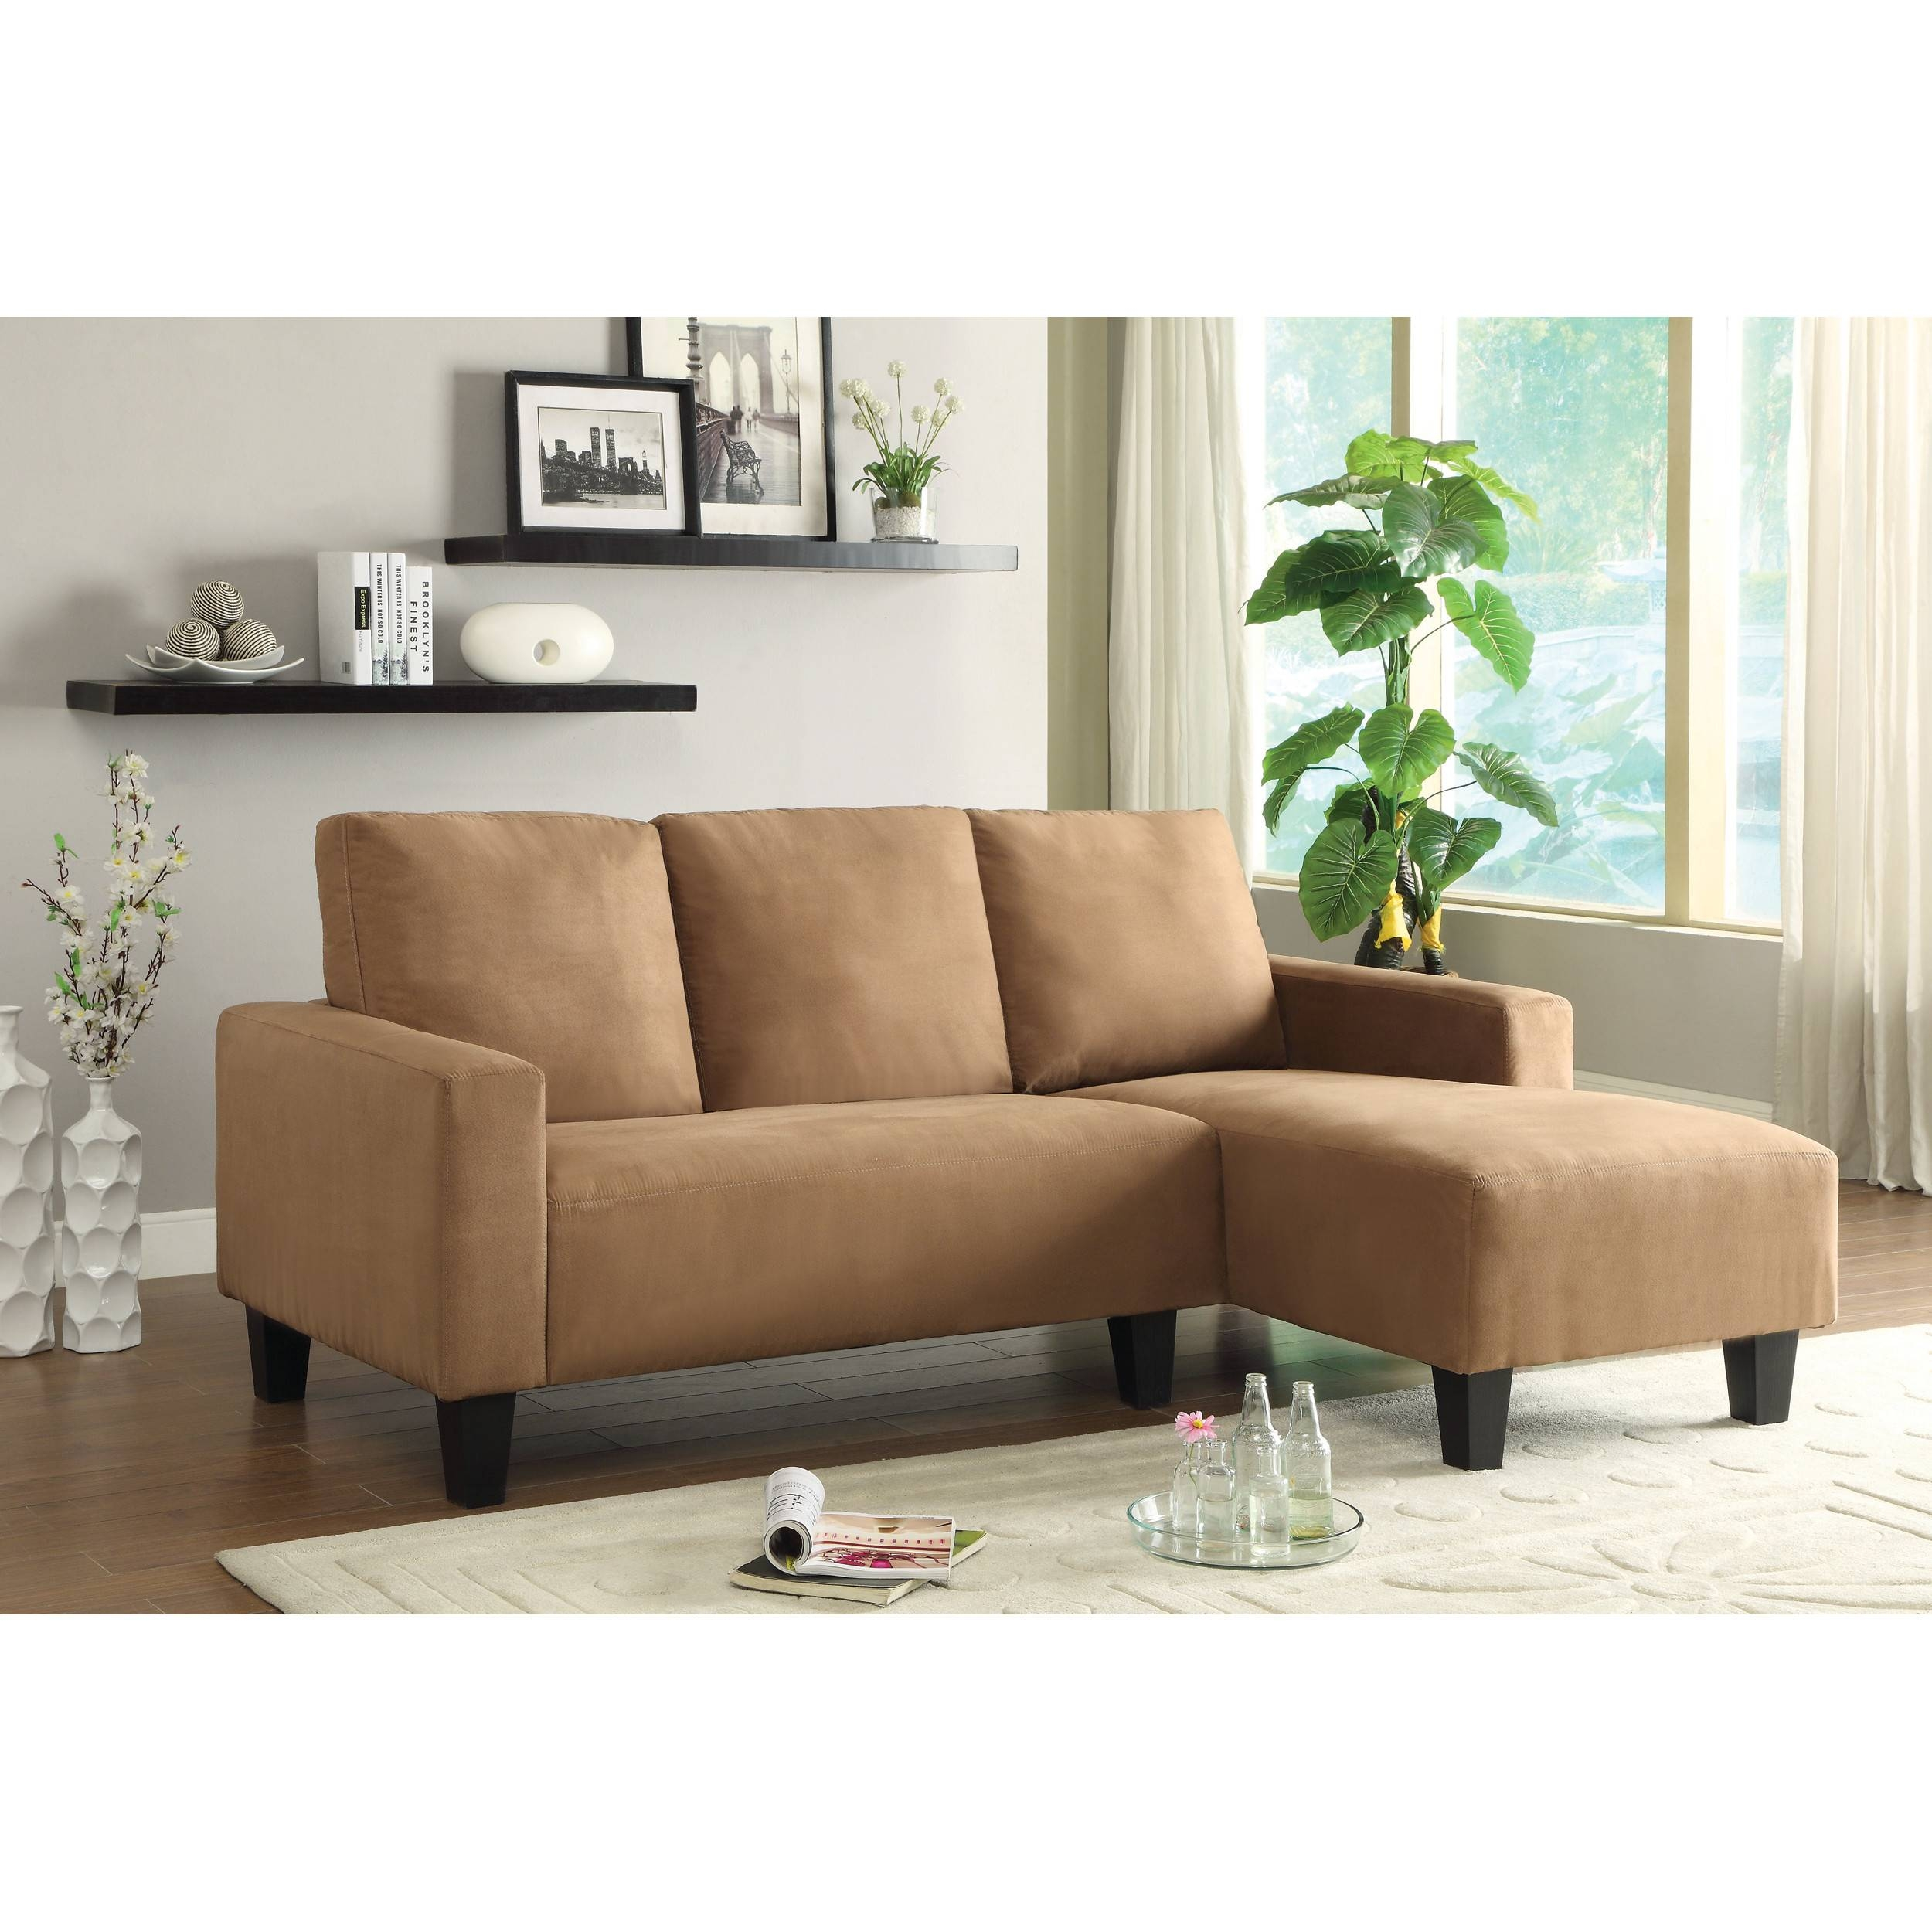 Furniture Home : New Discounted Sectional Sofa 14 About Remodel for Discounted Sectional Sofa (Image 11 of 30)